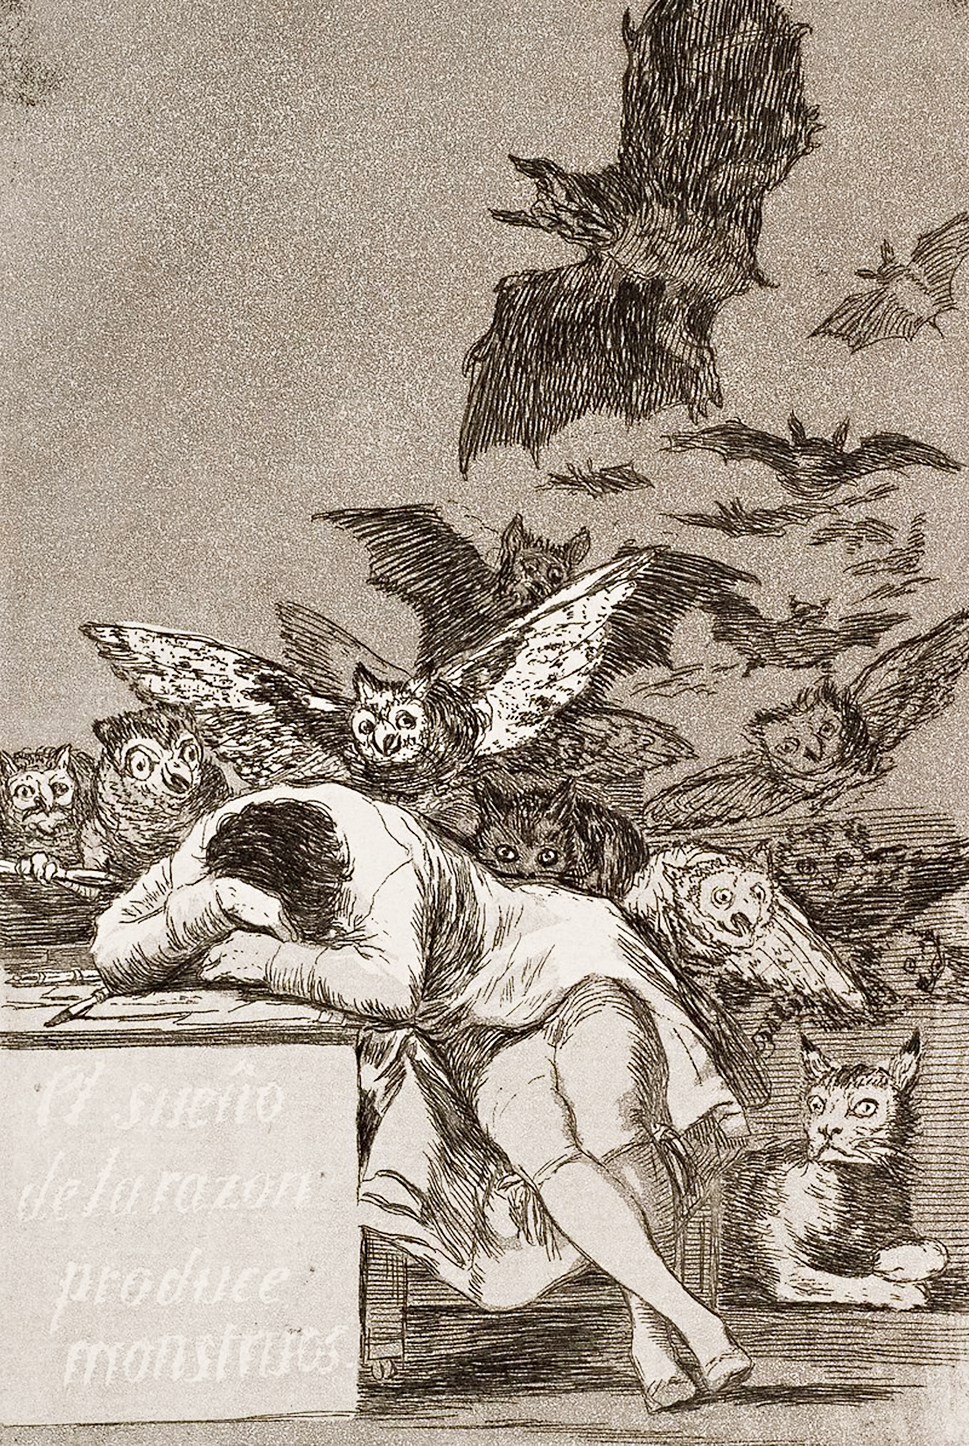 The sleep of reason produces monsters, an etching by Francisco Goya